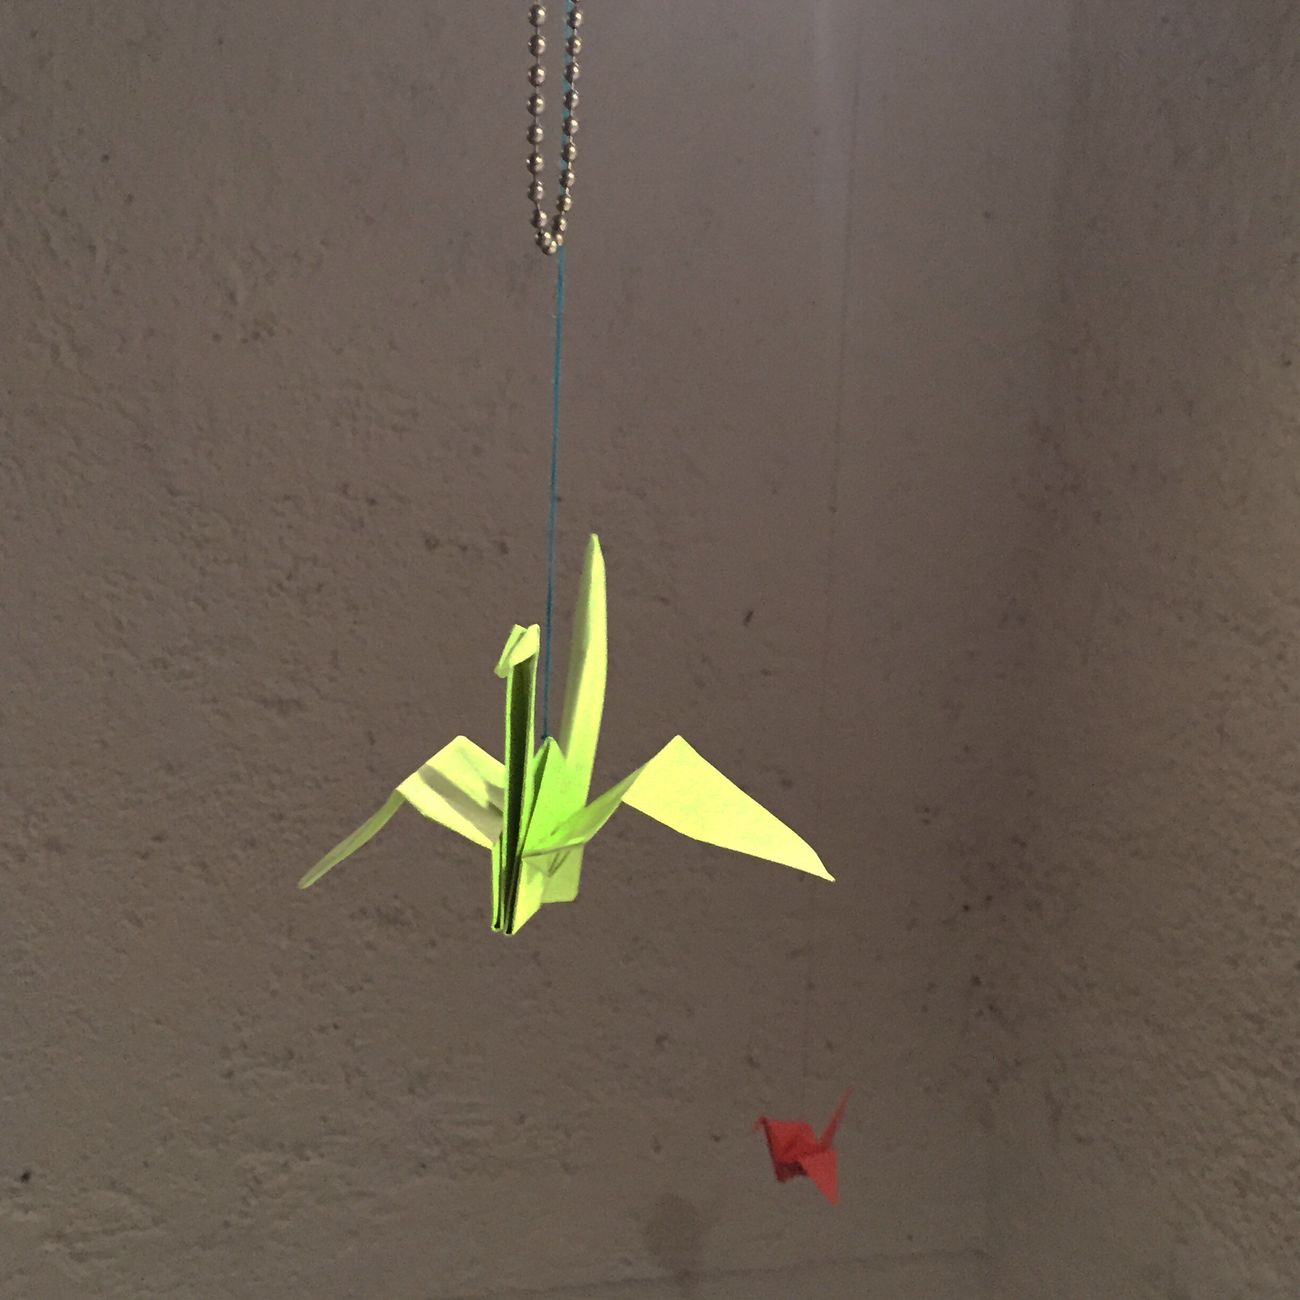 Love Light Hello World Decoration Decorating Happiness Hogar Dulce Hogar.. New Place New House Home Sweet Home In Progress  New Home Home Having Fun Gratitude Relaxing Enjoying Life FamilyLove Vibrant Color Grulla Origami